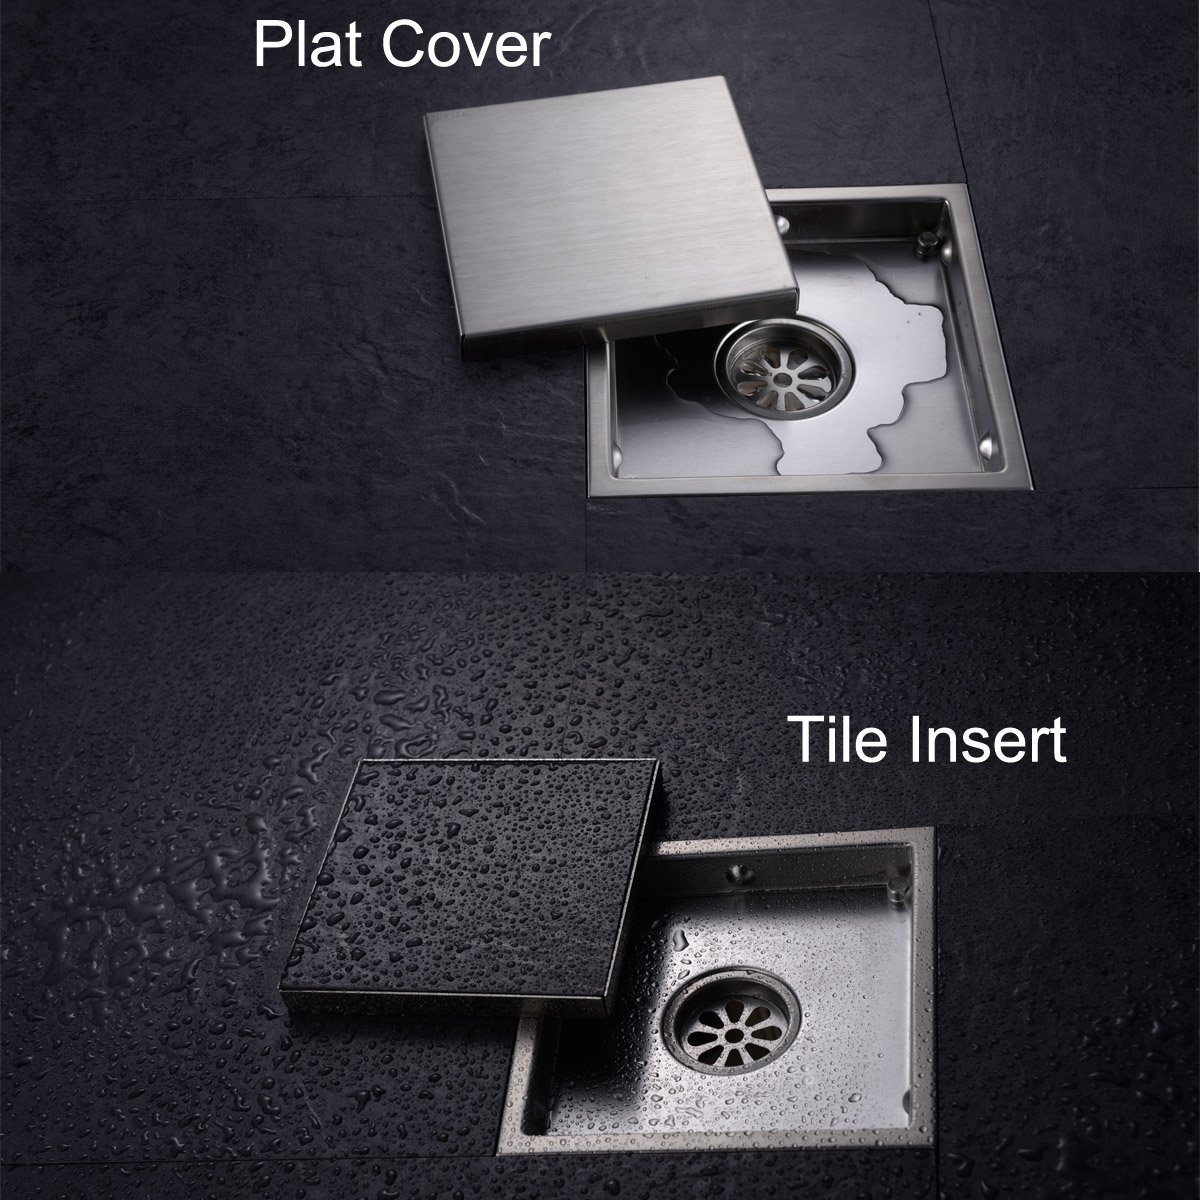 Square shower floor drain with tile insert grate made of sus304 square shower floor drain with tile insert grate made of sus304 stainless steel 6 inch multipurpose invisible look or flat cover brushed stainless dailygadgetfo Choice Image